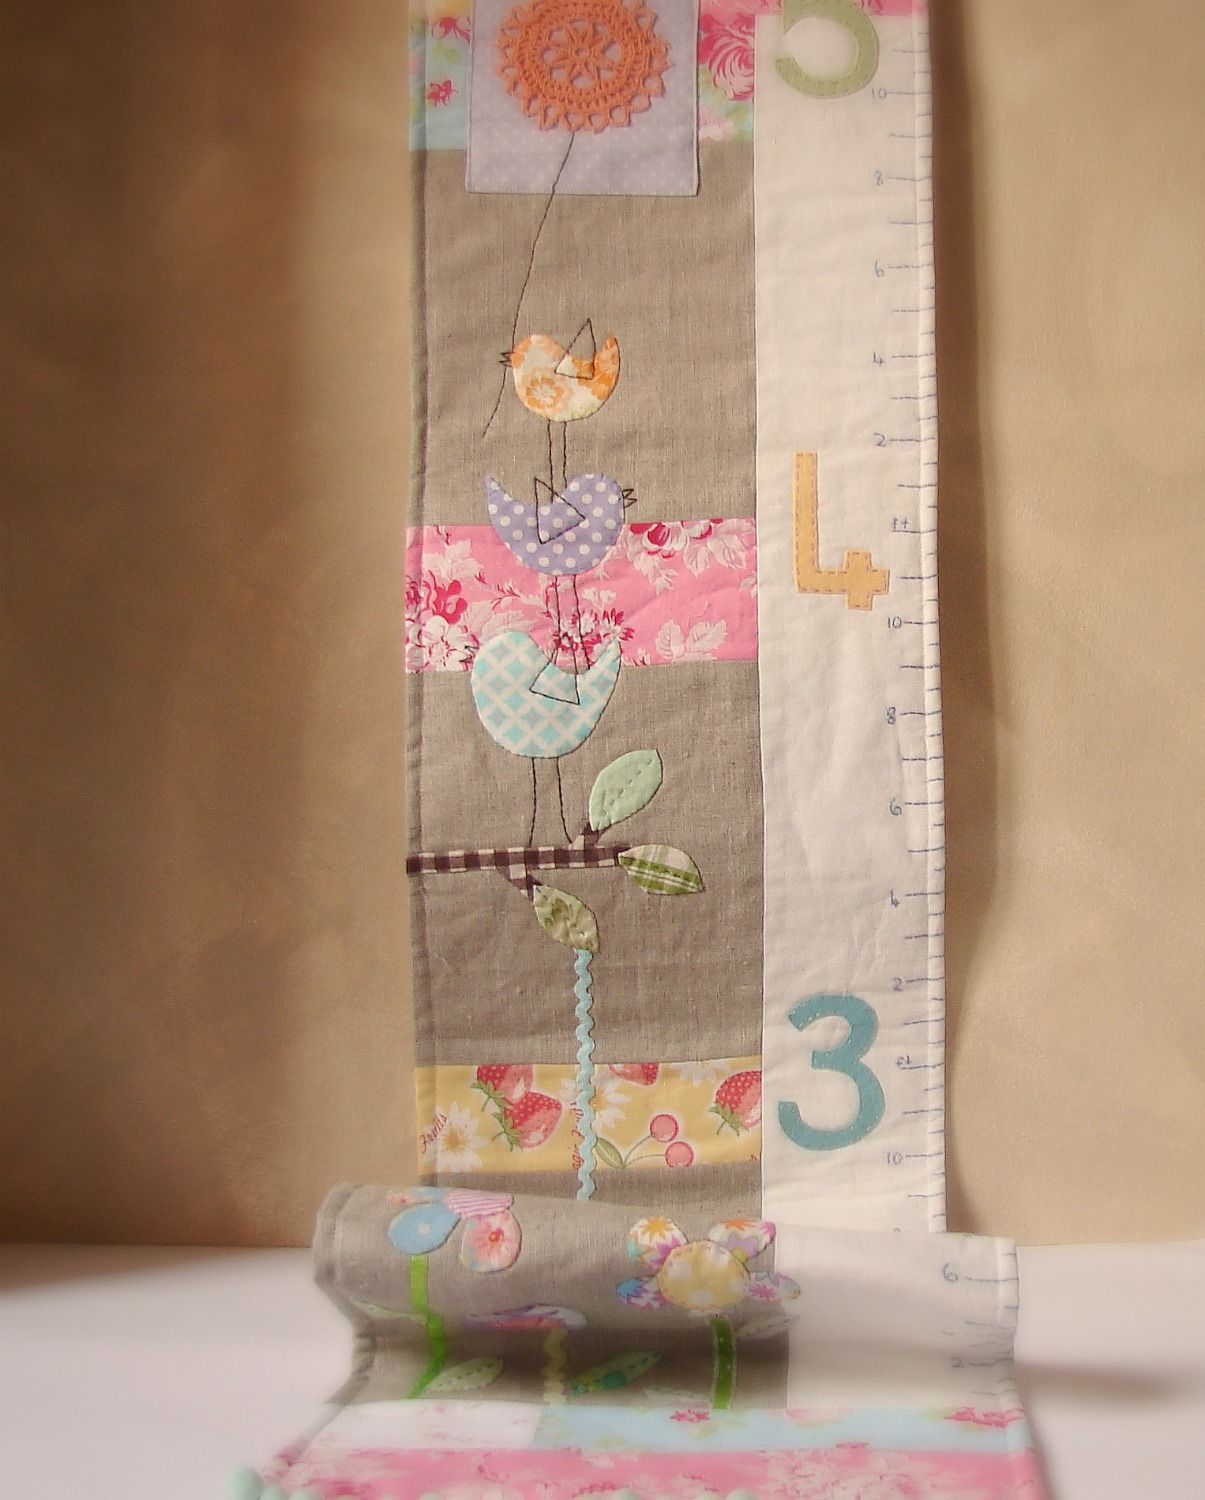 Roxy creations growth chart birds and flower quilting info roxy creations growth chart birds and flower geenschuldenfo Images